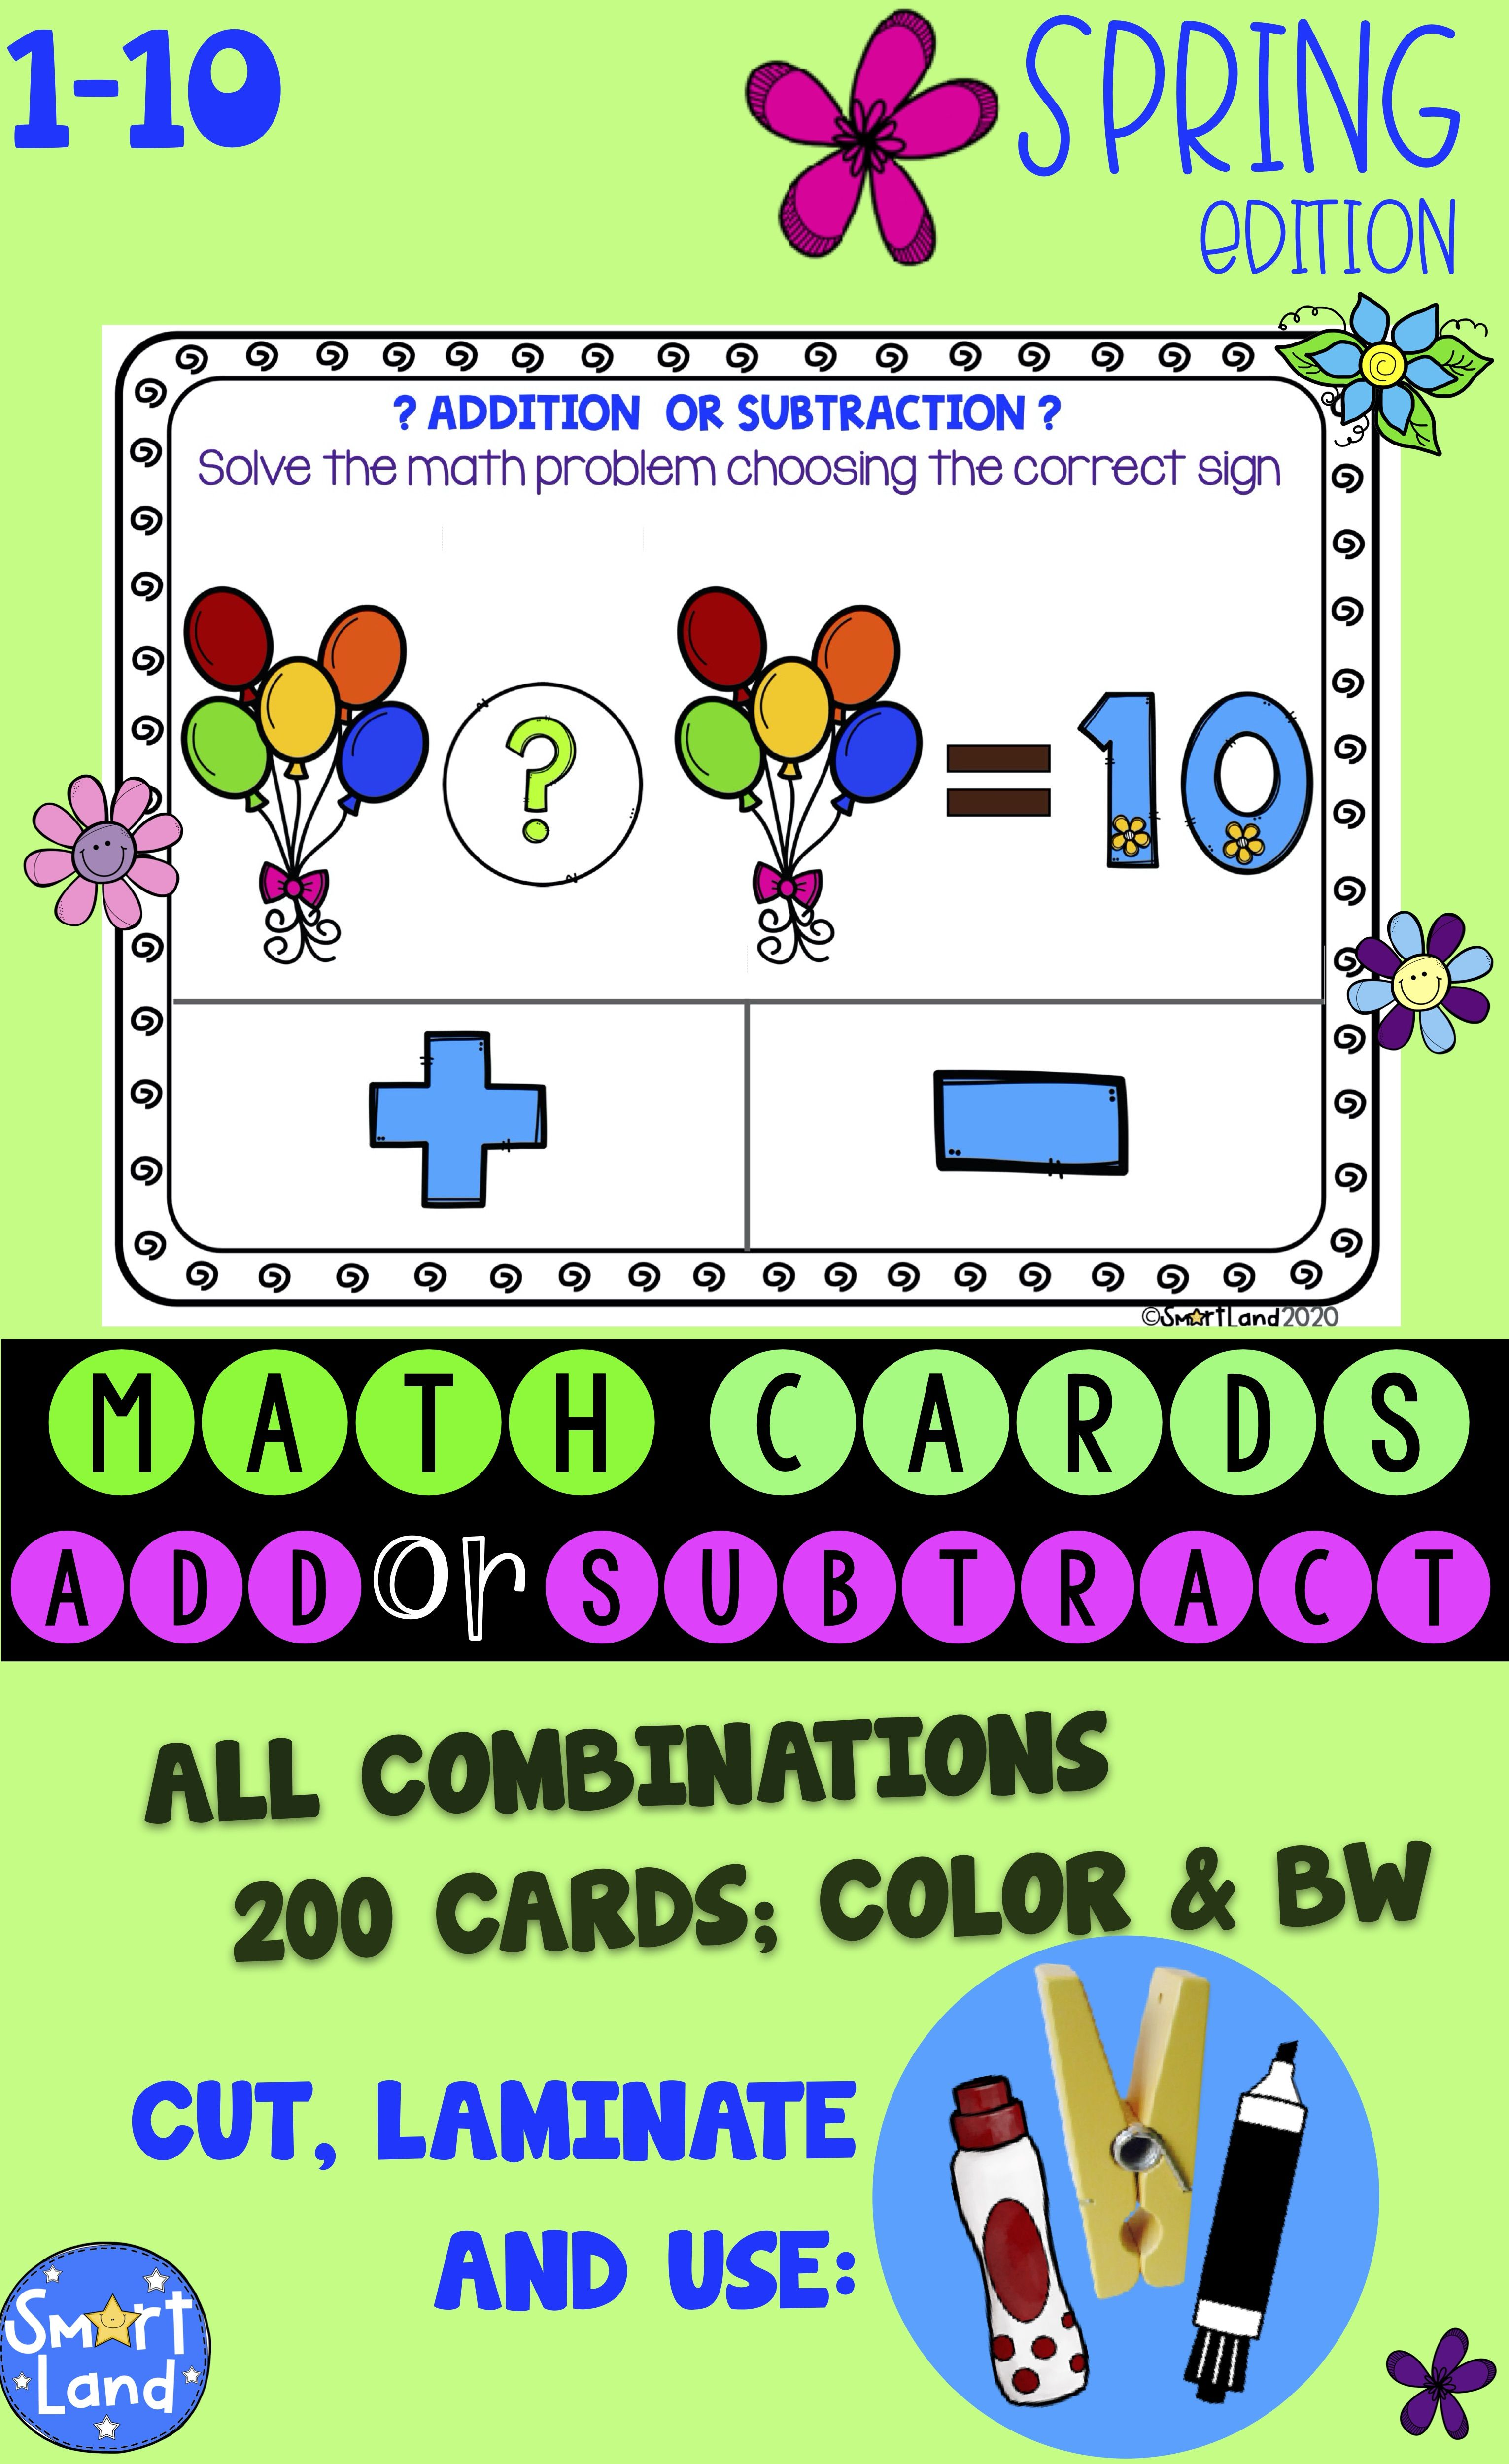 Math Cards Add Or Subtract Spring